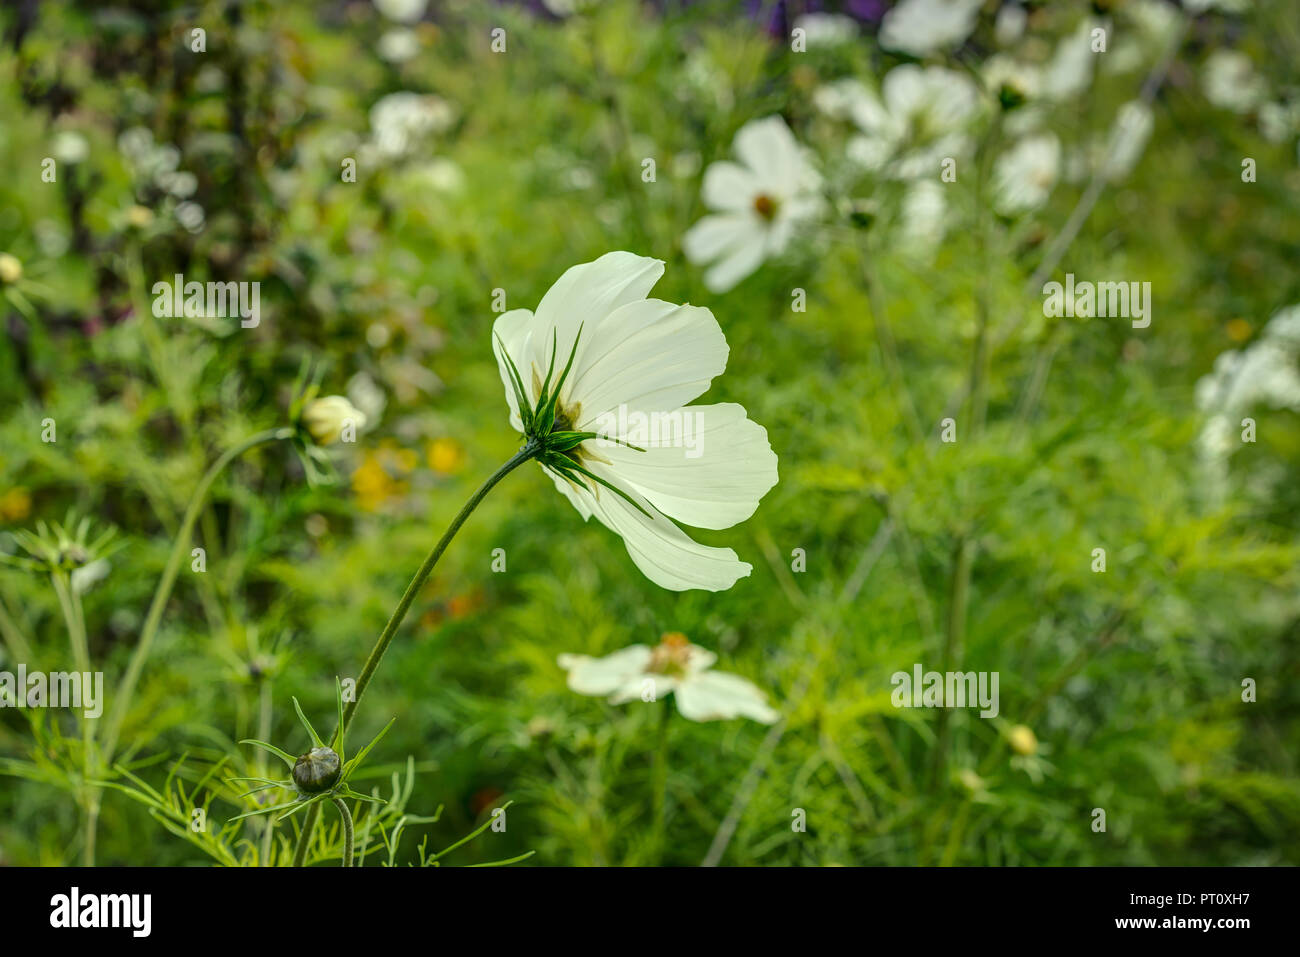 This Is A Sharply Rendered Picture Of A Beautiful White Cosmos